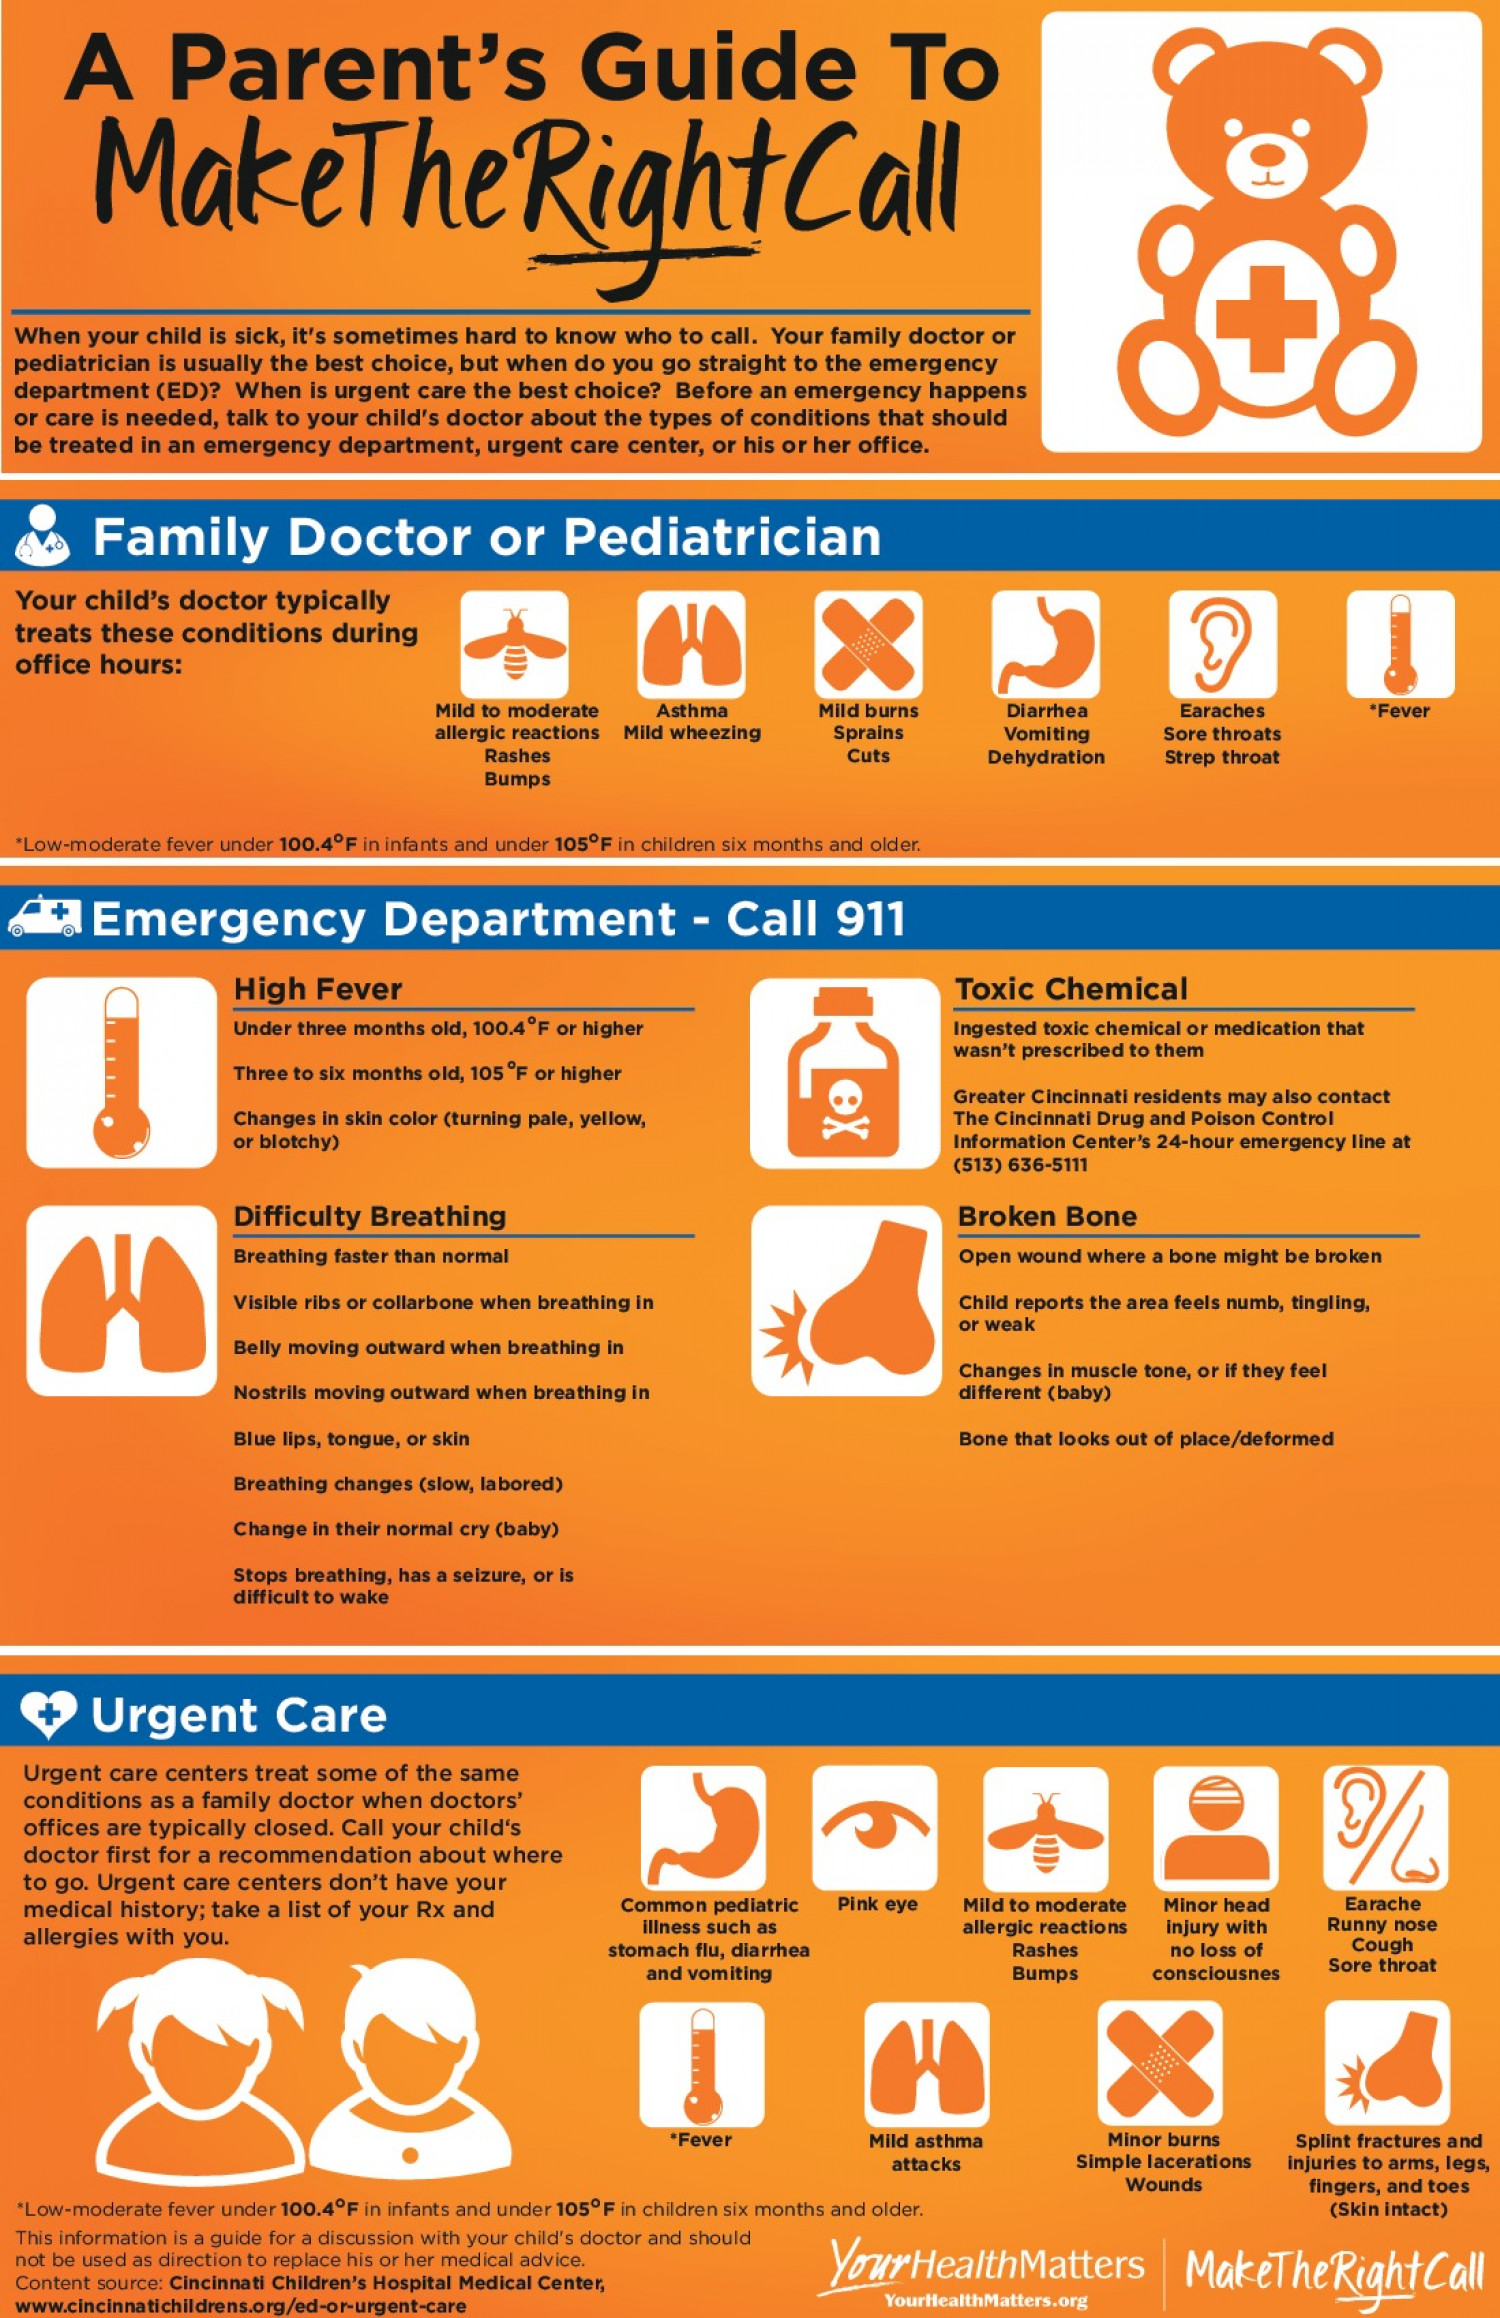 A Parent's Guide to Make The Right Call Infographic